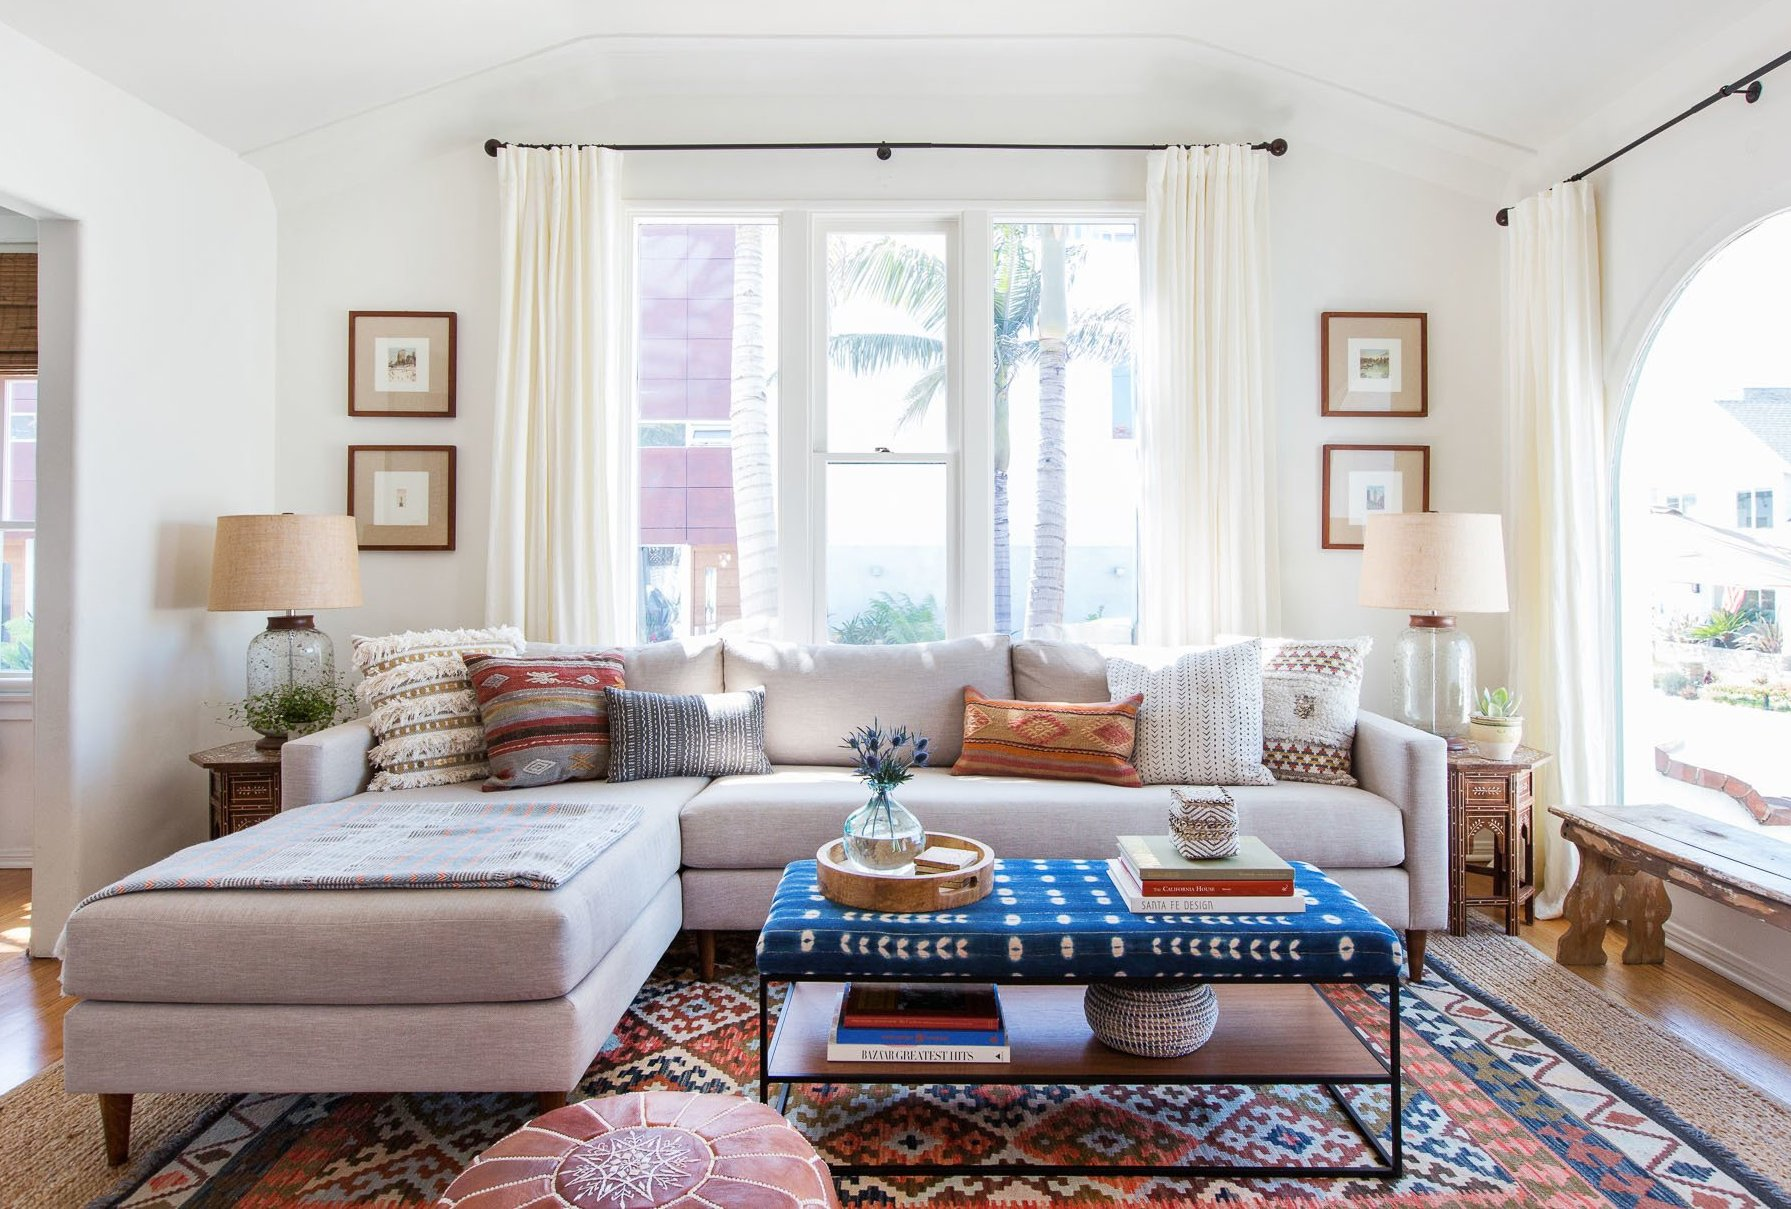 10 Items That Will Pull Together Your Living Room The